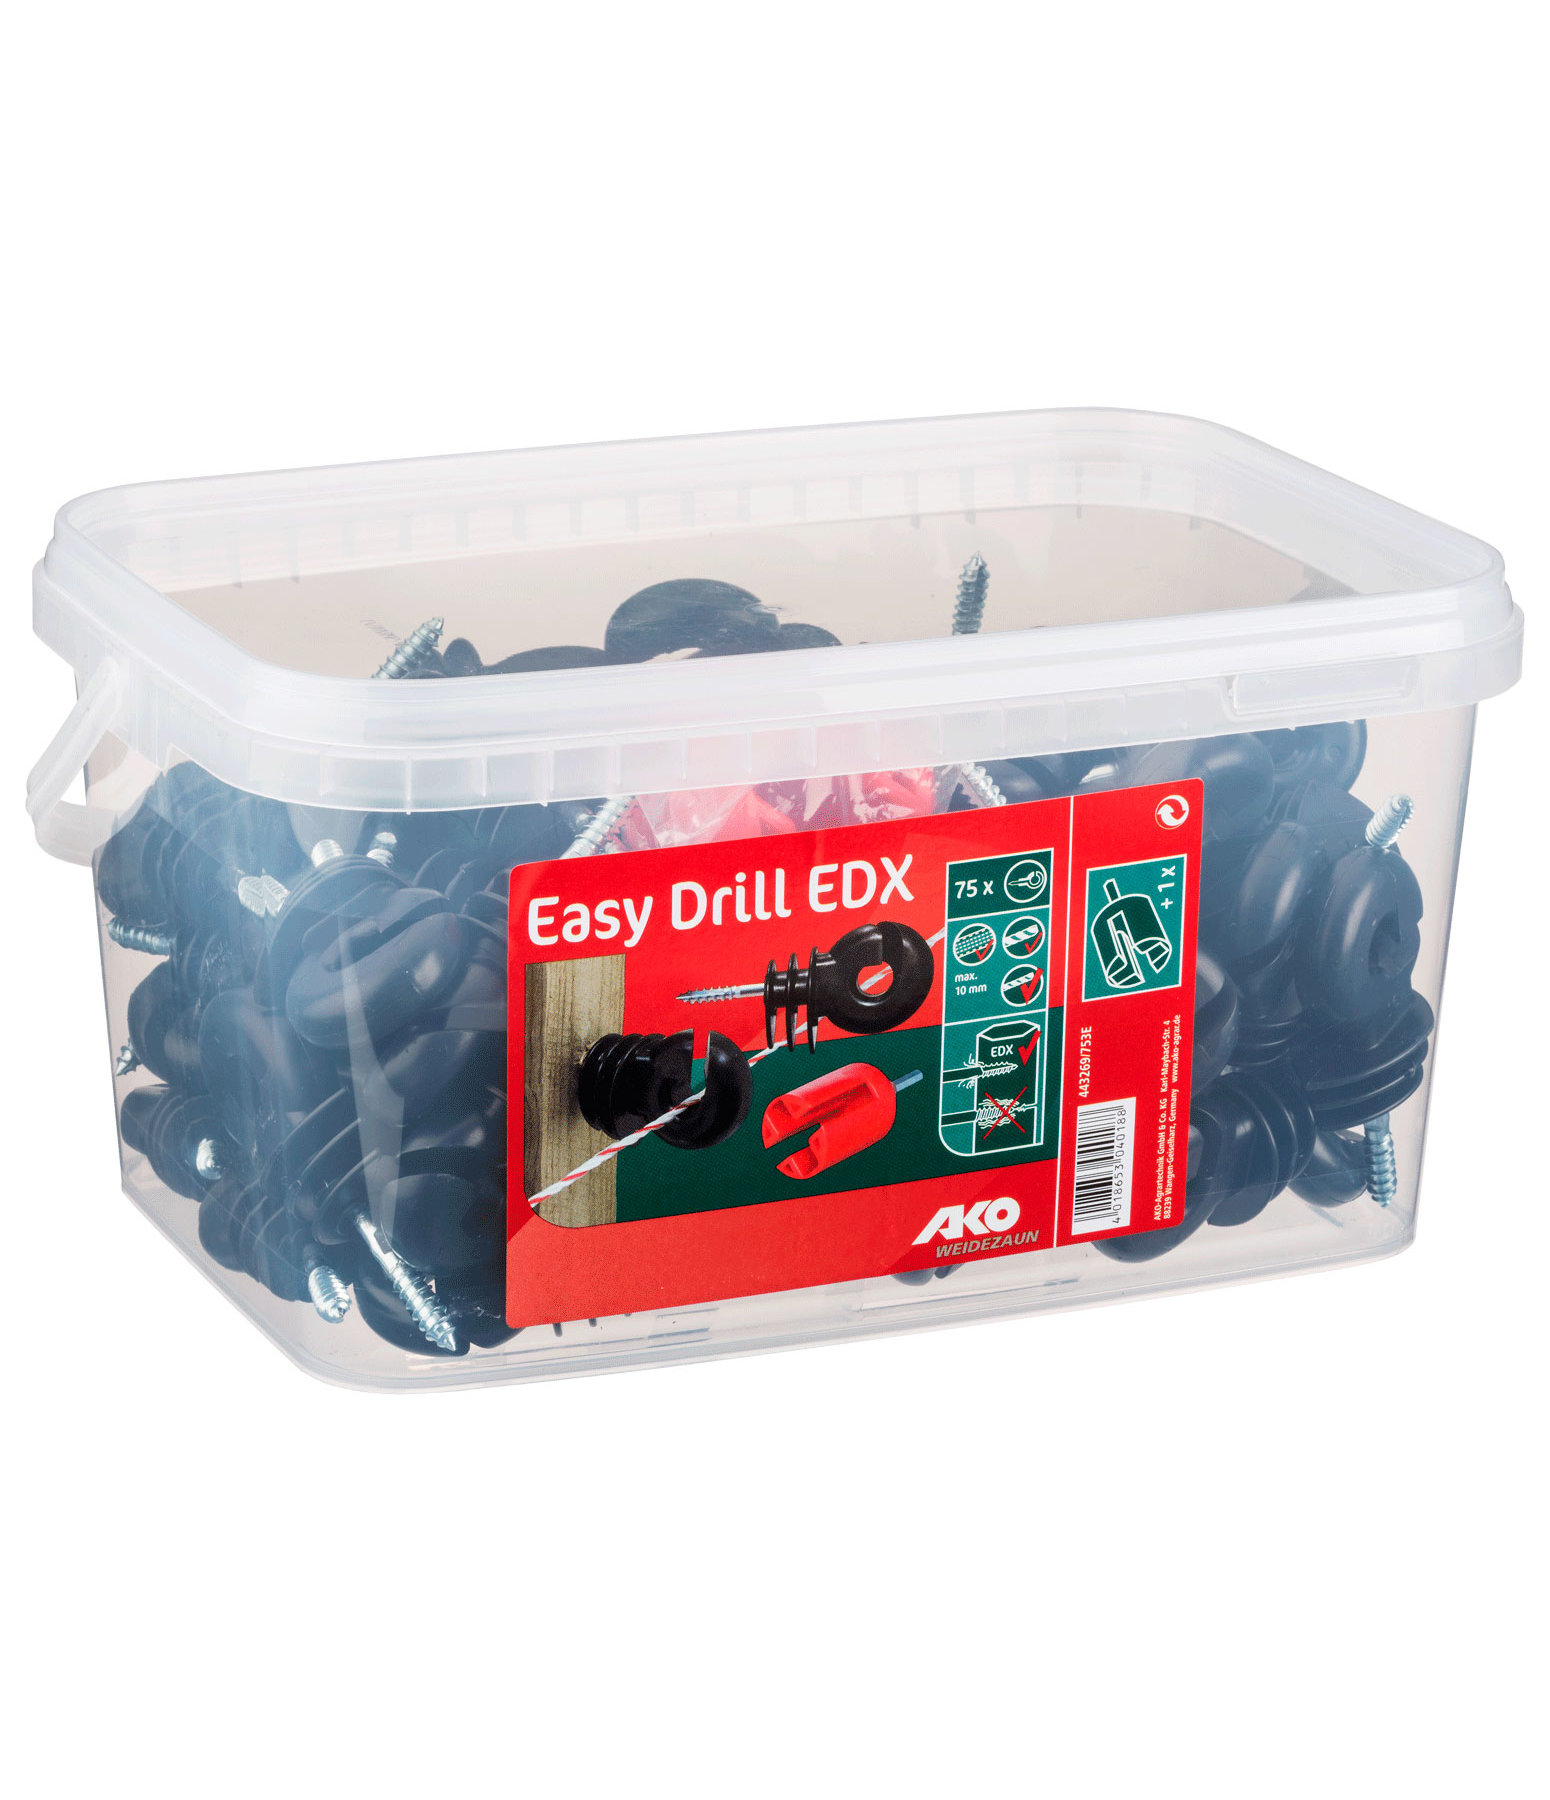 Isolateurs annulaires Easy Drill en seau